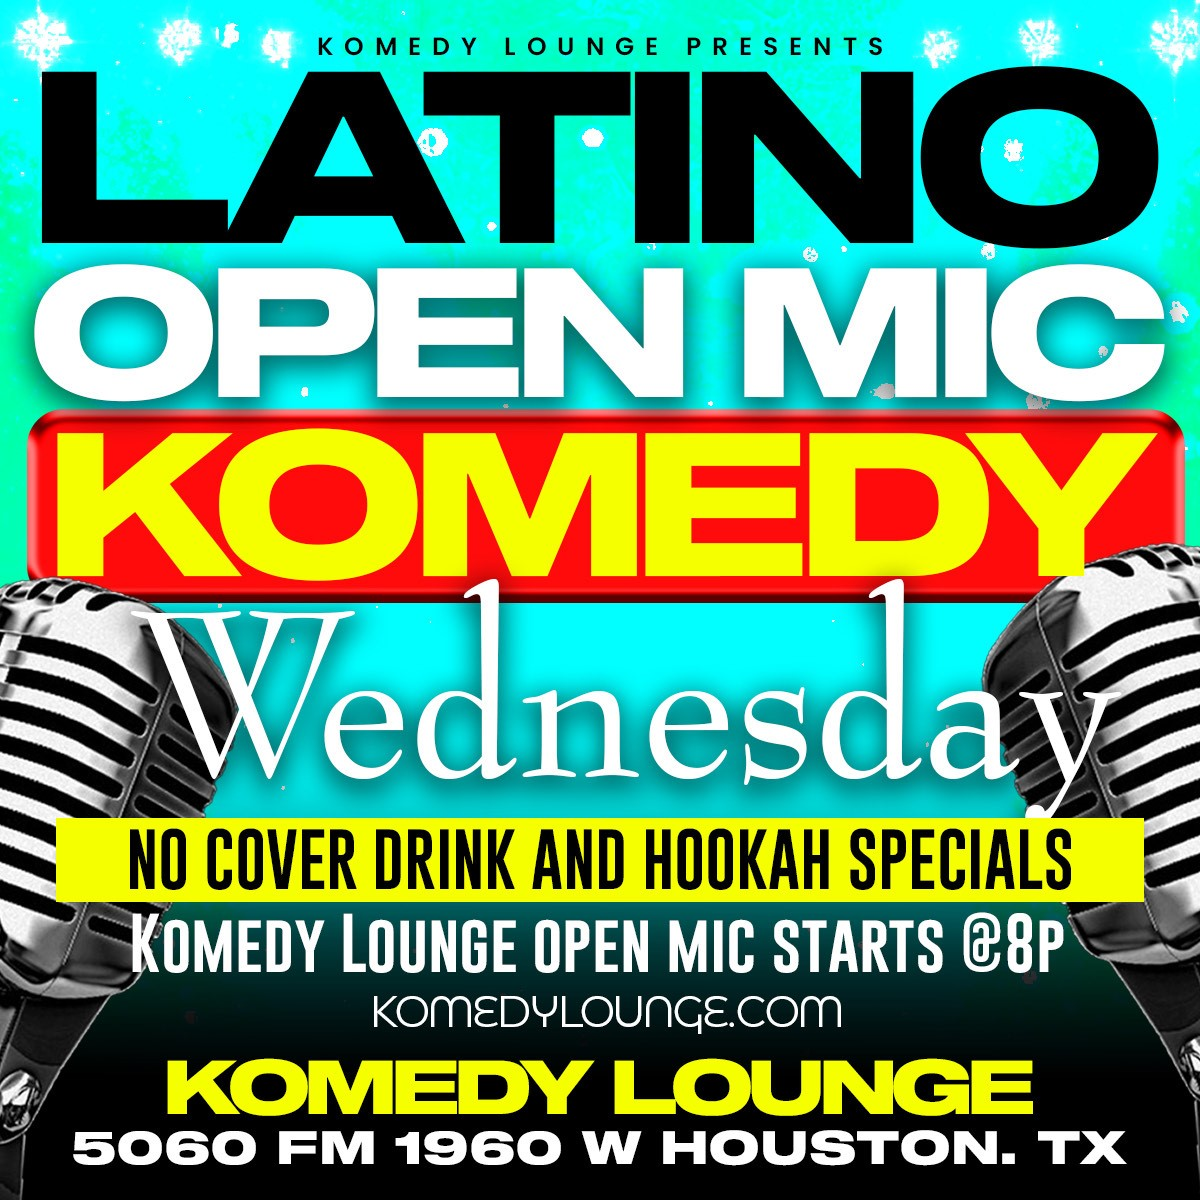 Open Mic Komedy Wednesday  on Dec 30, 00:00@The Komedy Lounge - Buy tickets and Get information on komedylounge.com